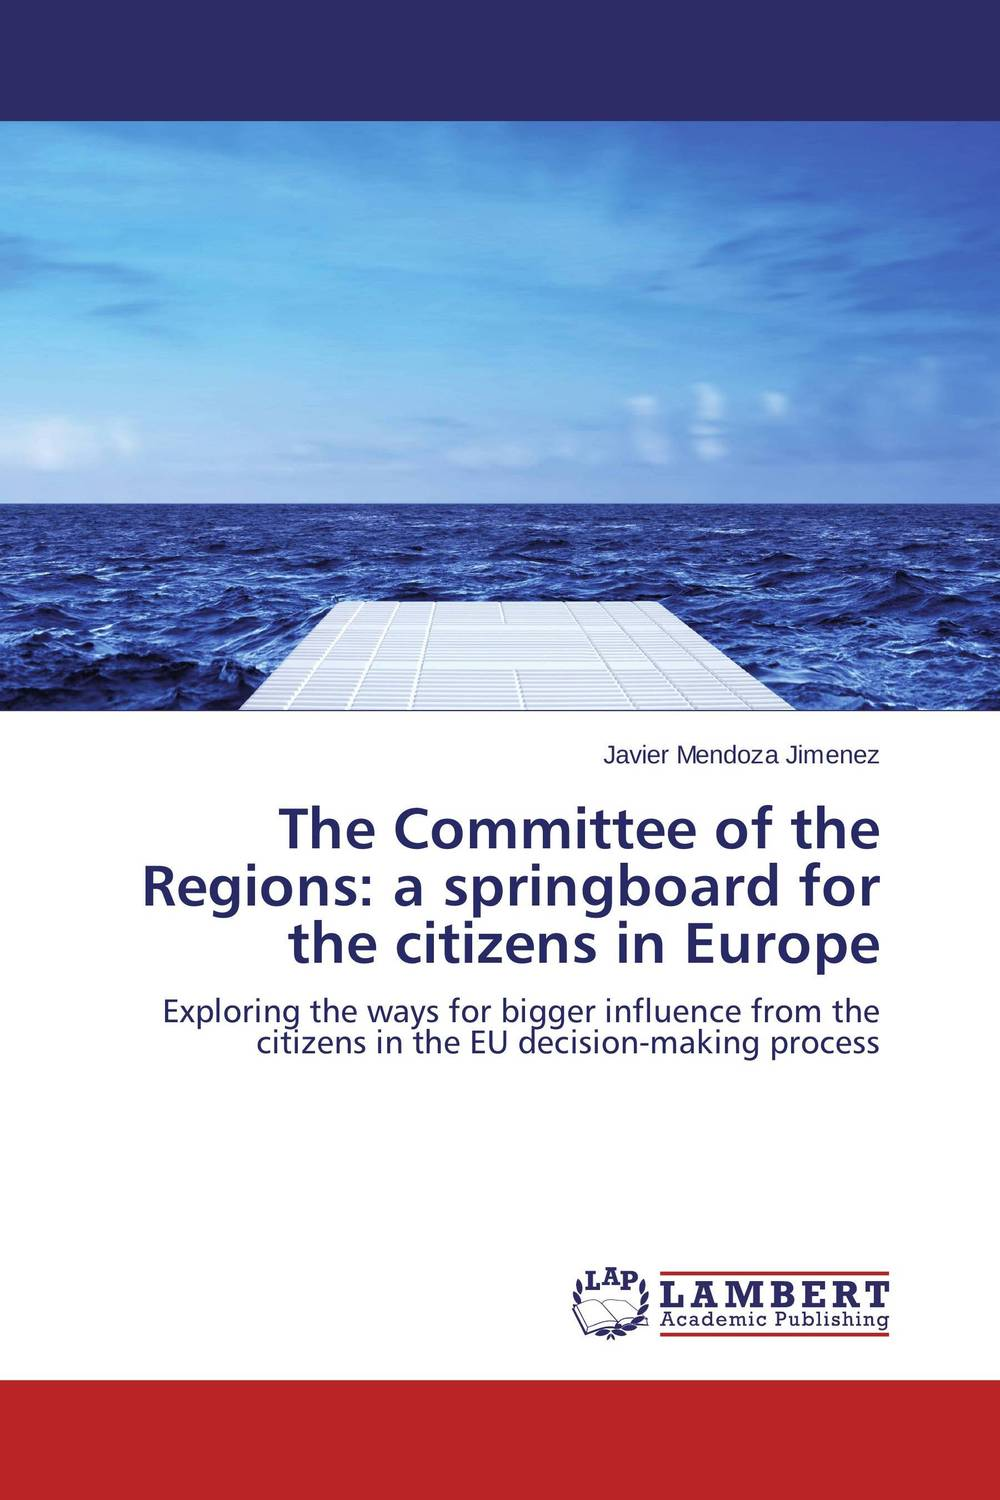 The Committee of the Regions: a springboard for the citizens in Europe the springboard in the pond – an intimate history of the swimming pool